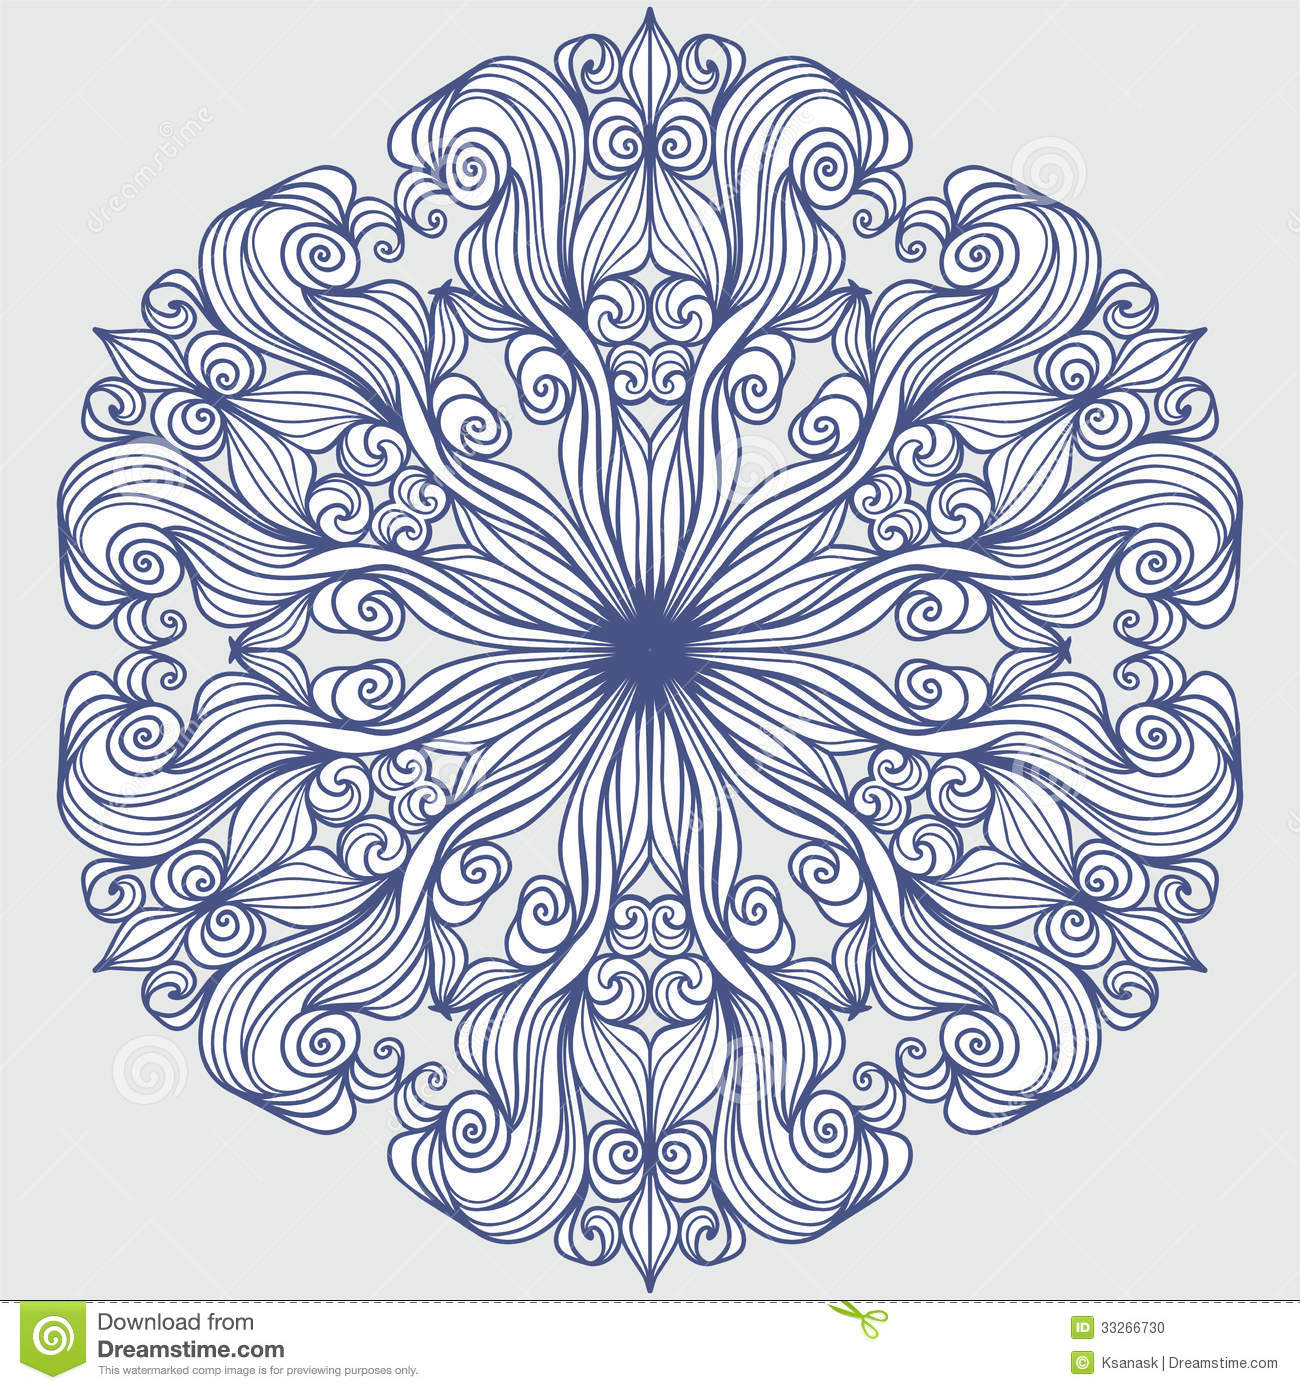 Line Art Media Design : Design element round pattern stock vector image